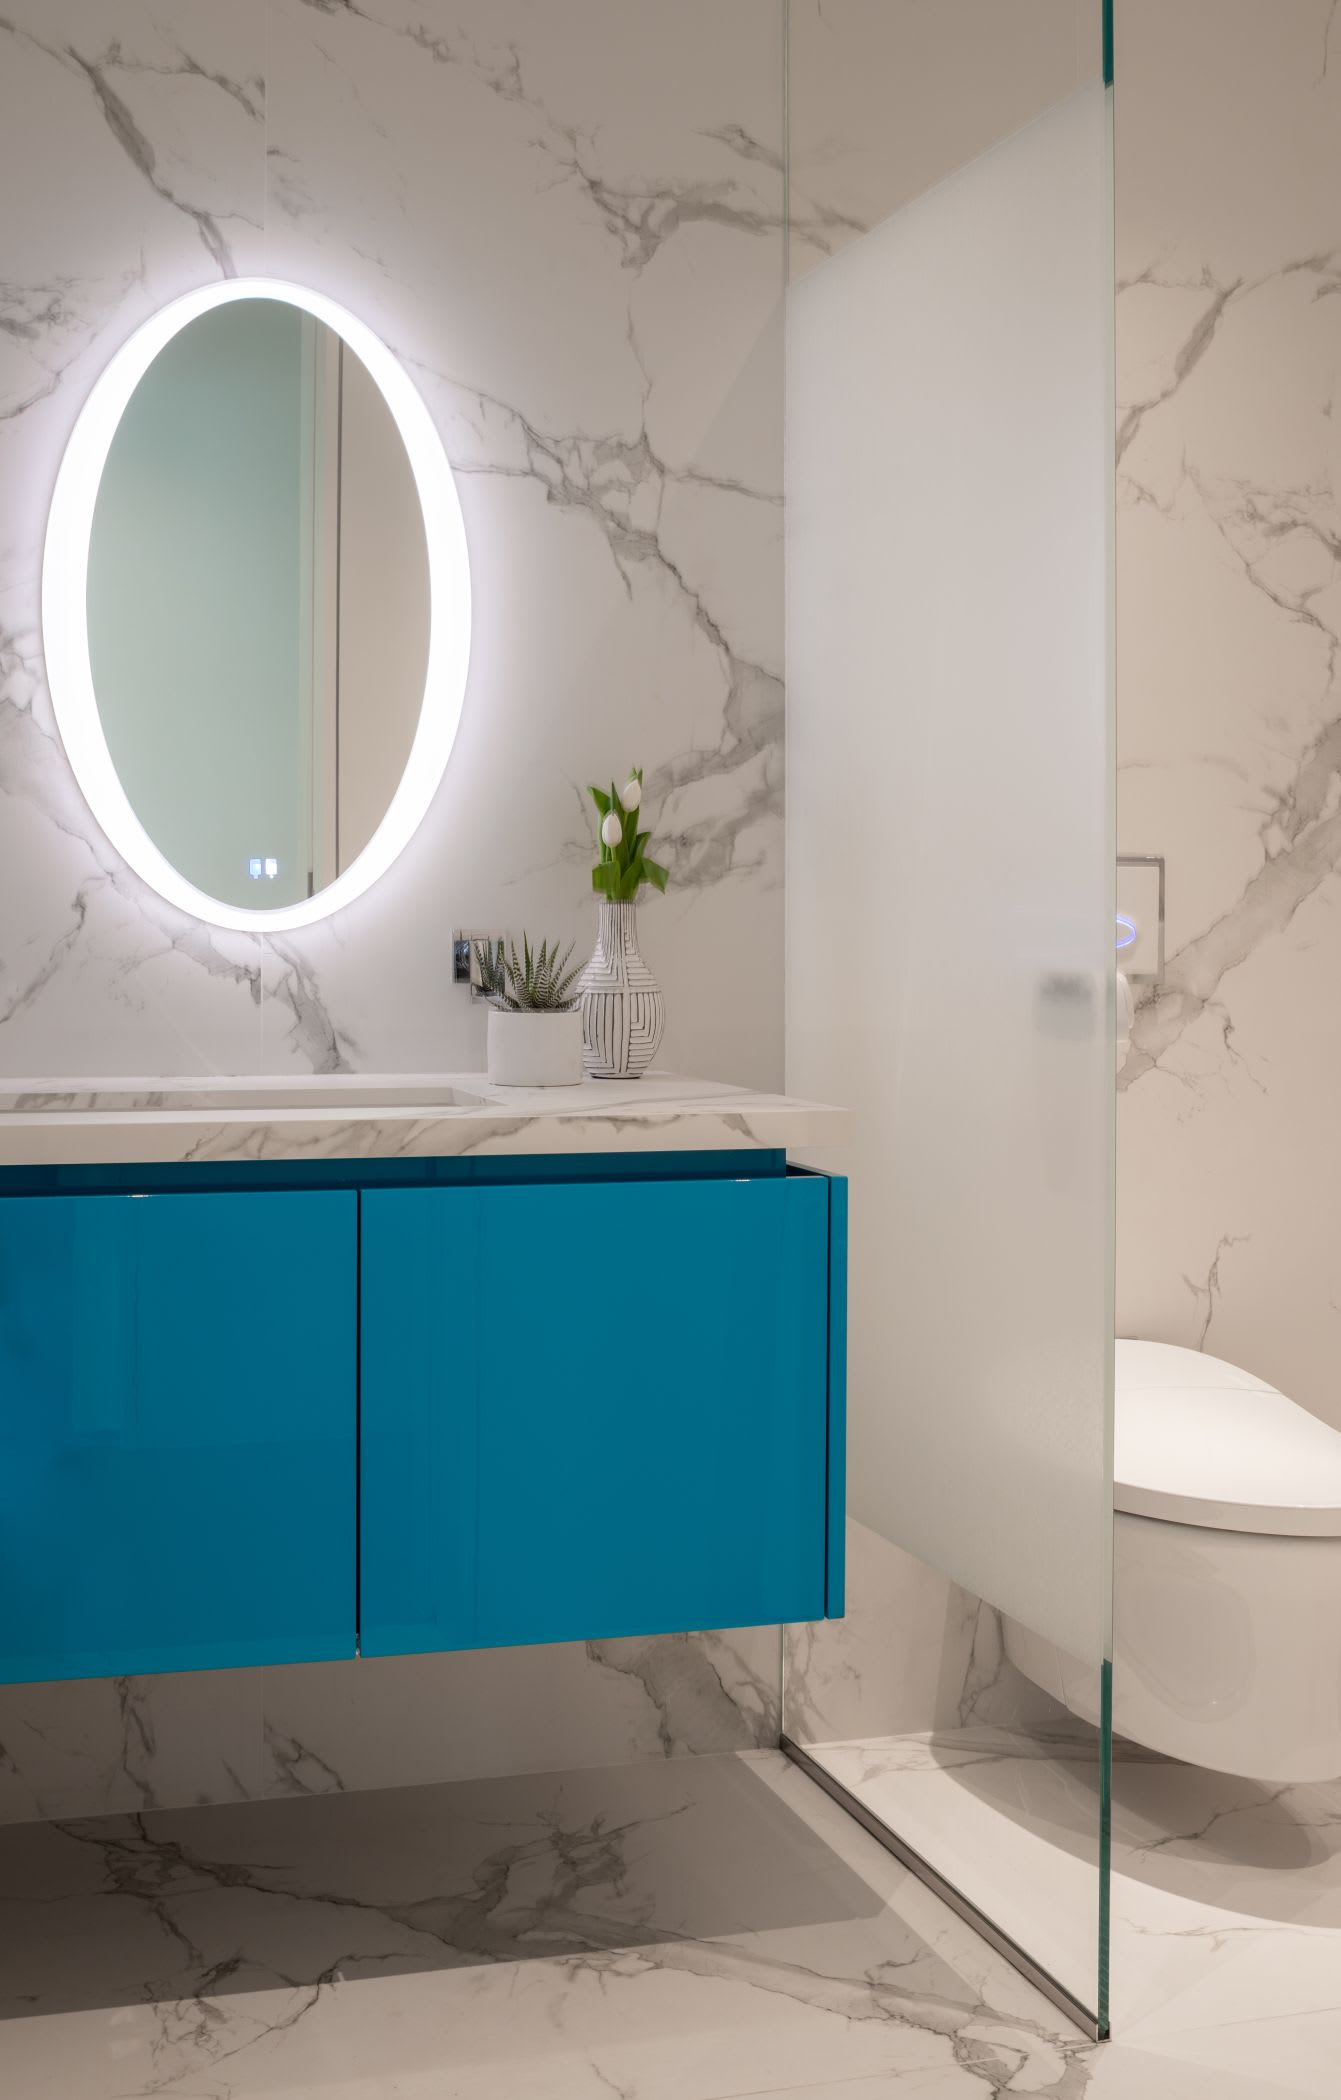 eggersmann custom porsche blue on a powder room vanity is achieved with a custom lacquer system